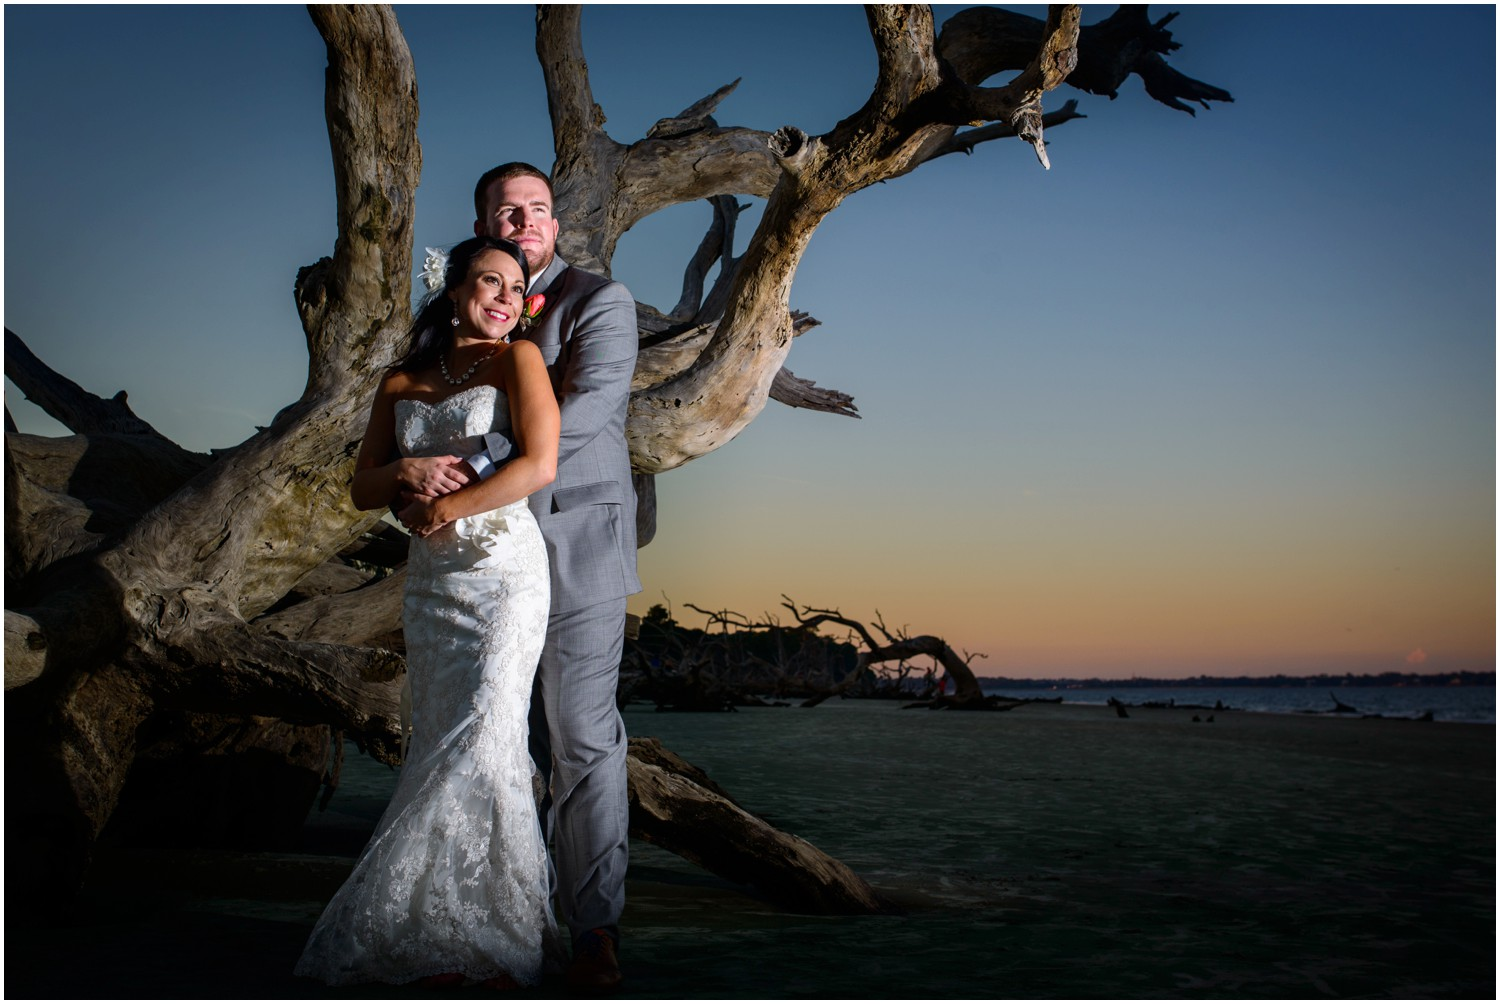 Jekyll-island-destination-beach-wedding-photography-_0076.jpg